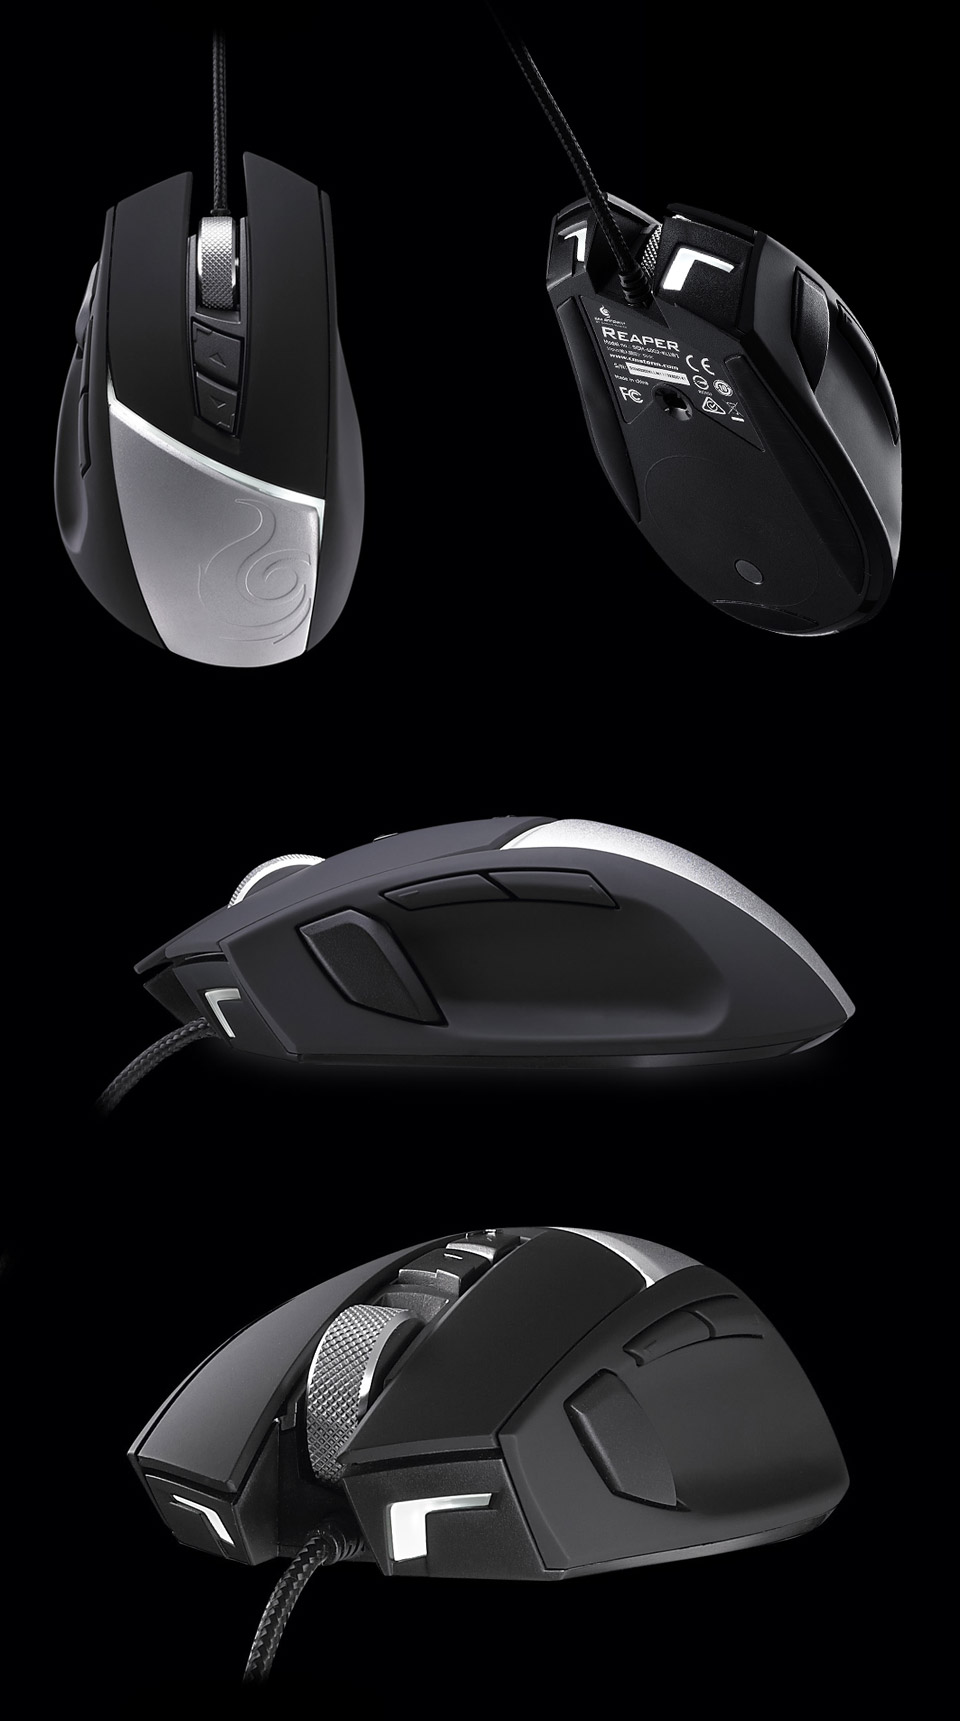 788b1083546 ... adjustable DPI up to 8200, LED lighting, a customisable palm rest and  much more. Designed for comfort, the CM Storm Reaper is the ultimate gaming  mouse.